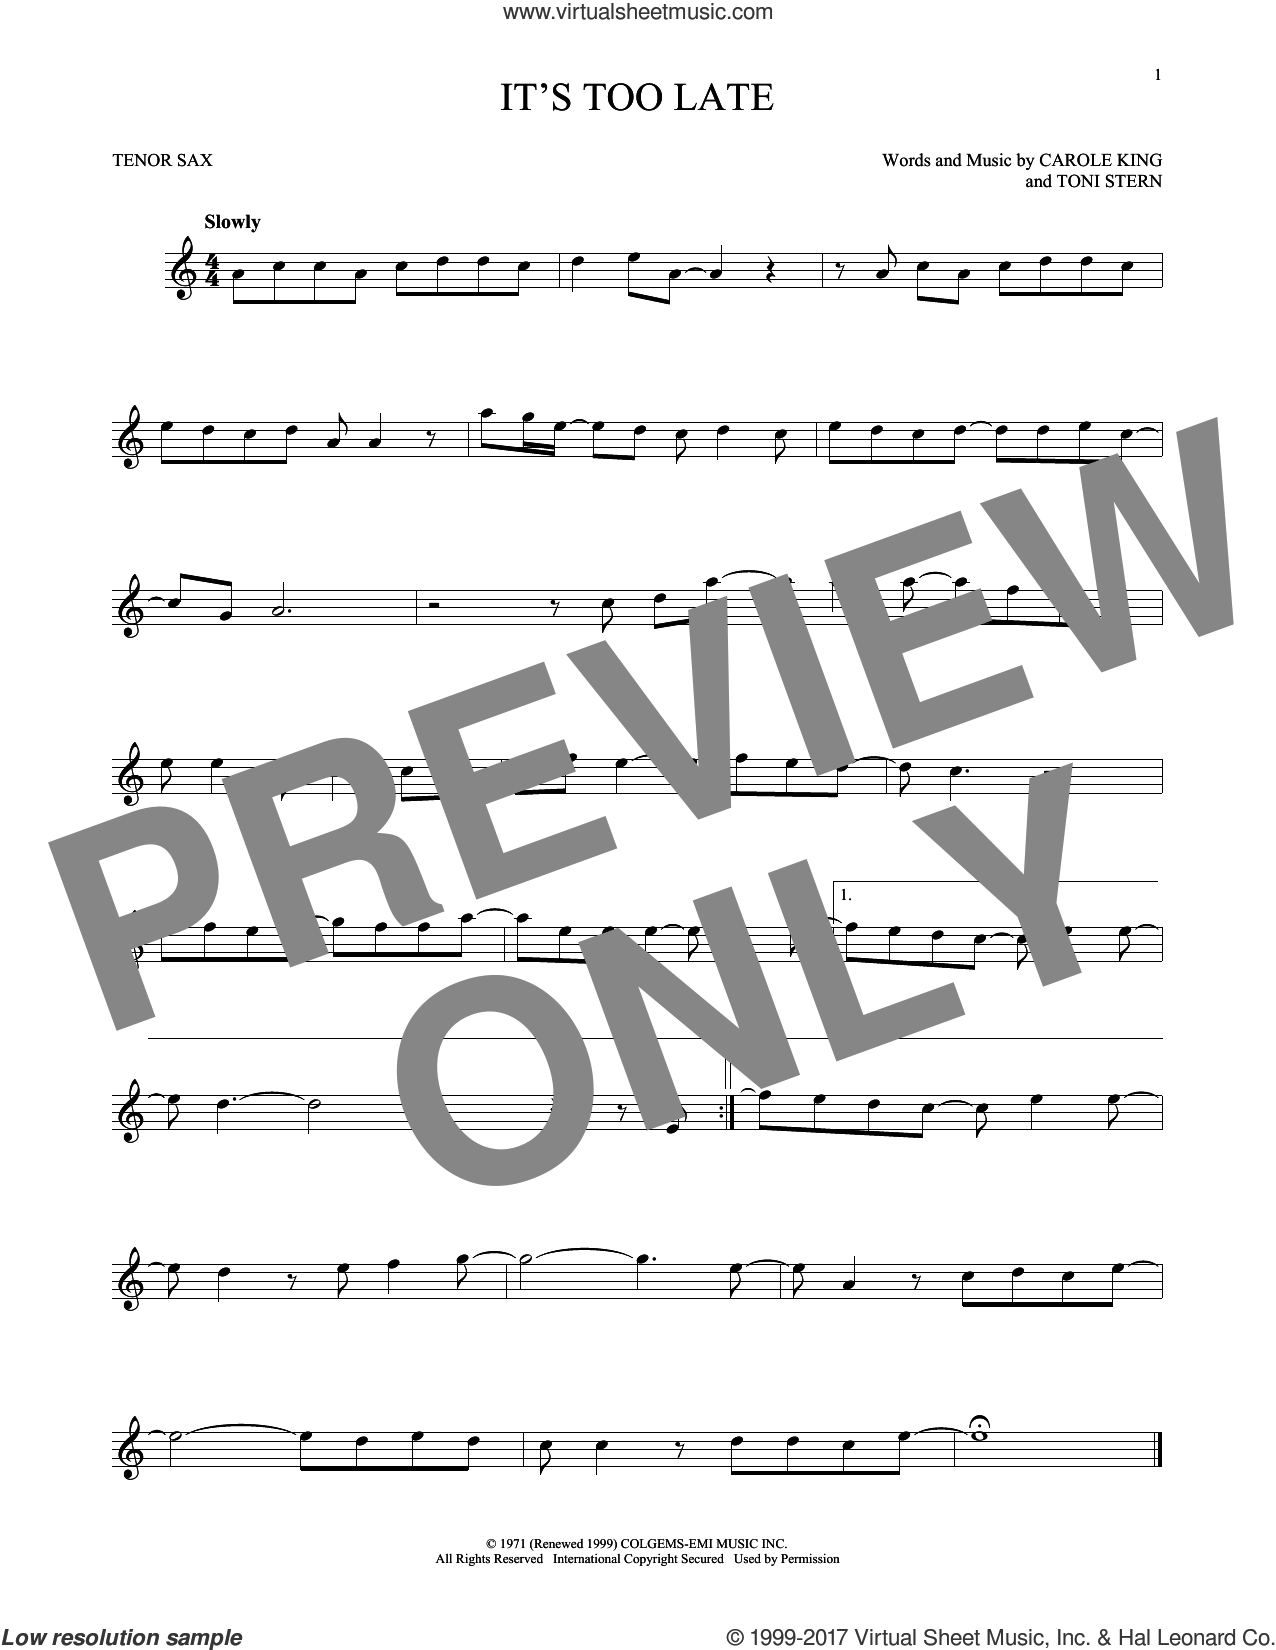 It's Too Late sheet music for tenor saxophone solo by Carole King and Toni Stern, intermediate skill level